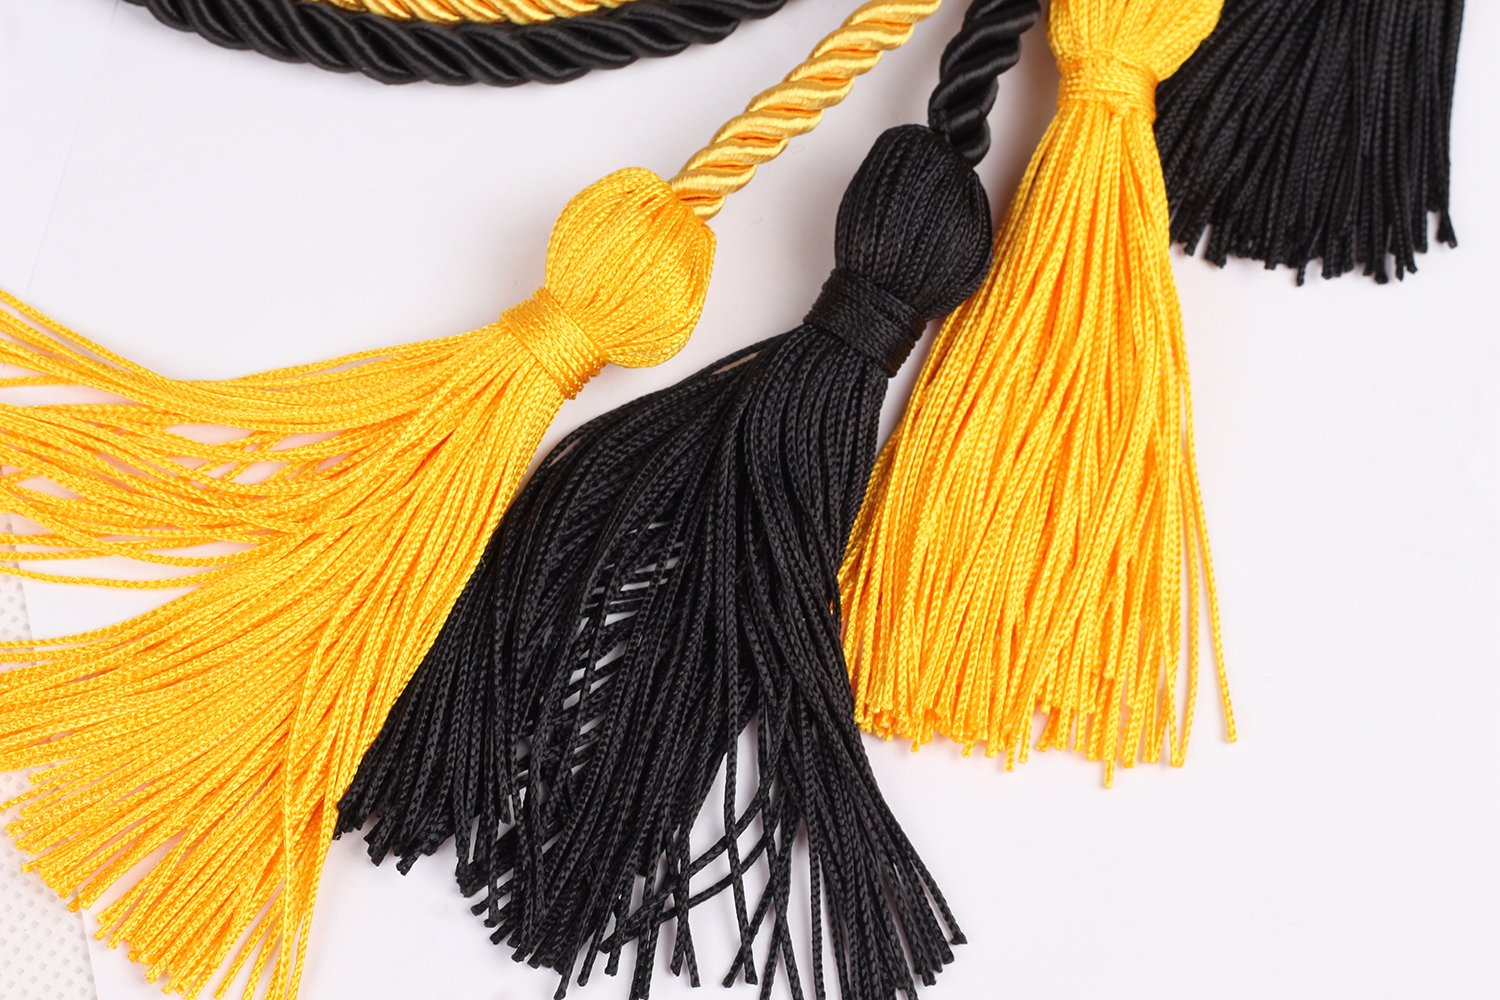 Double Graduation Honor Cords Black and Red,68 Long